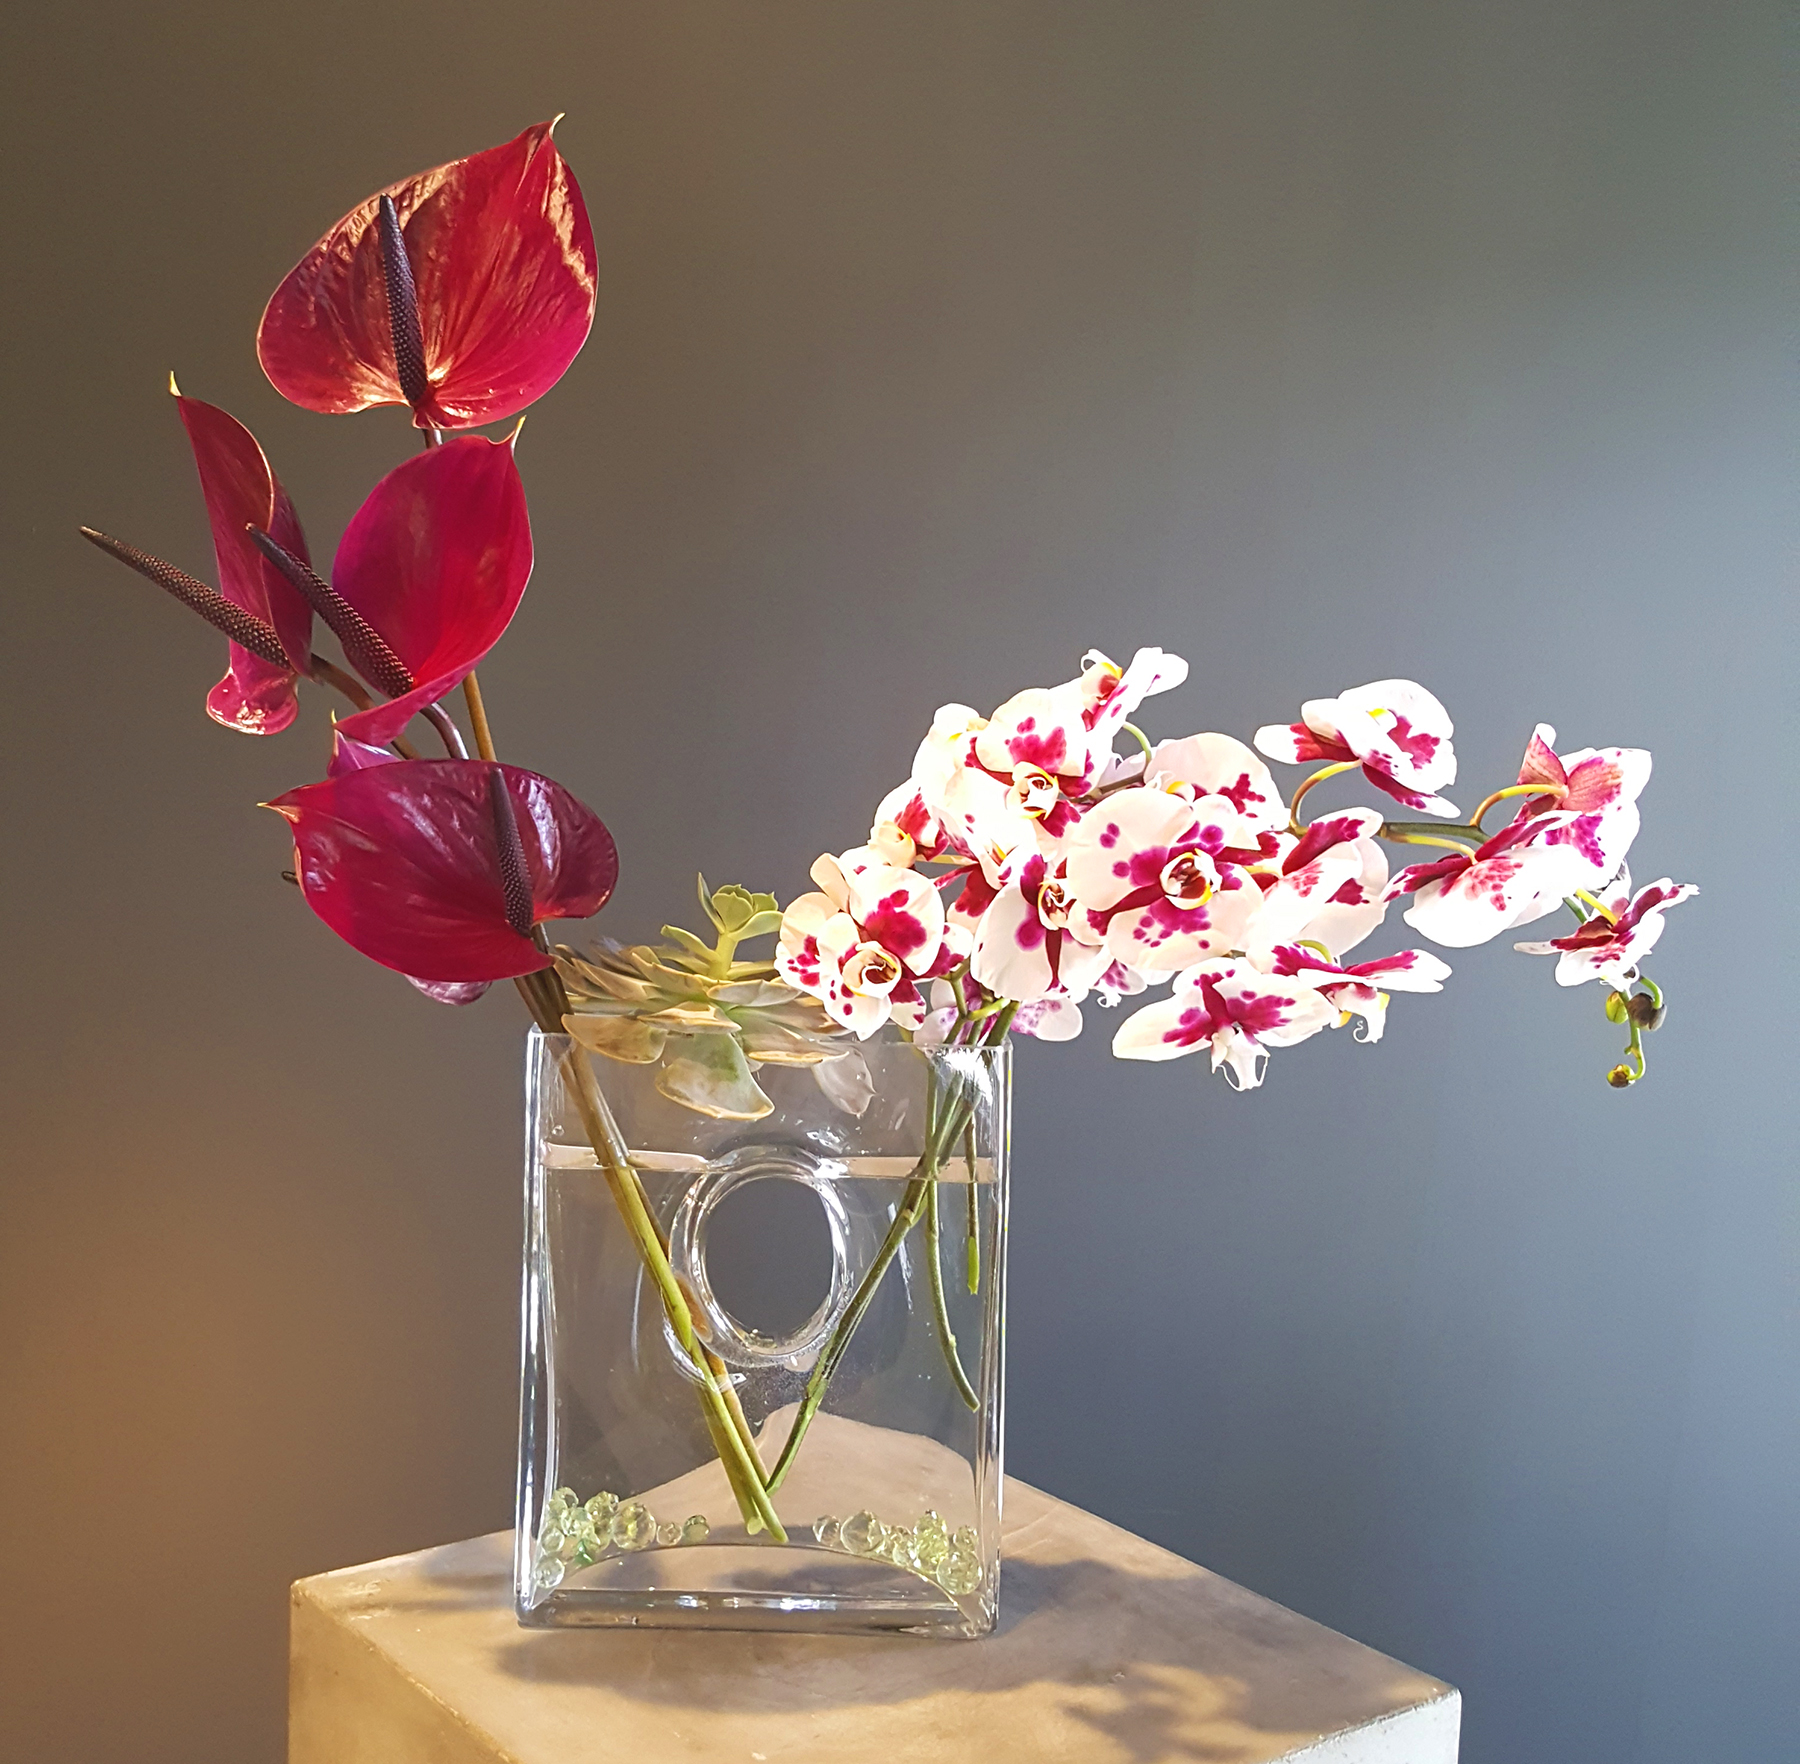 Intricate orchids for office or restaurant decor by Bouquets & Beyond